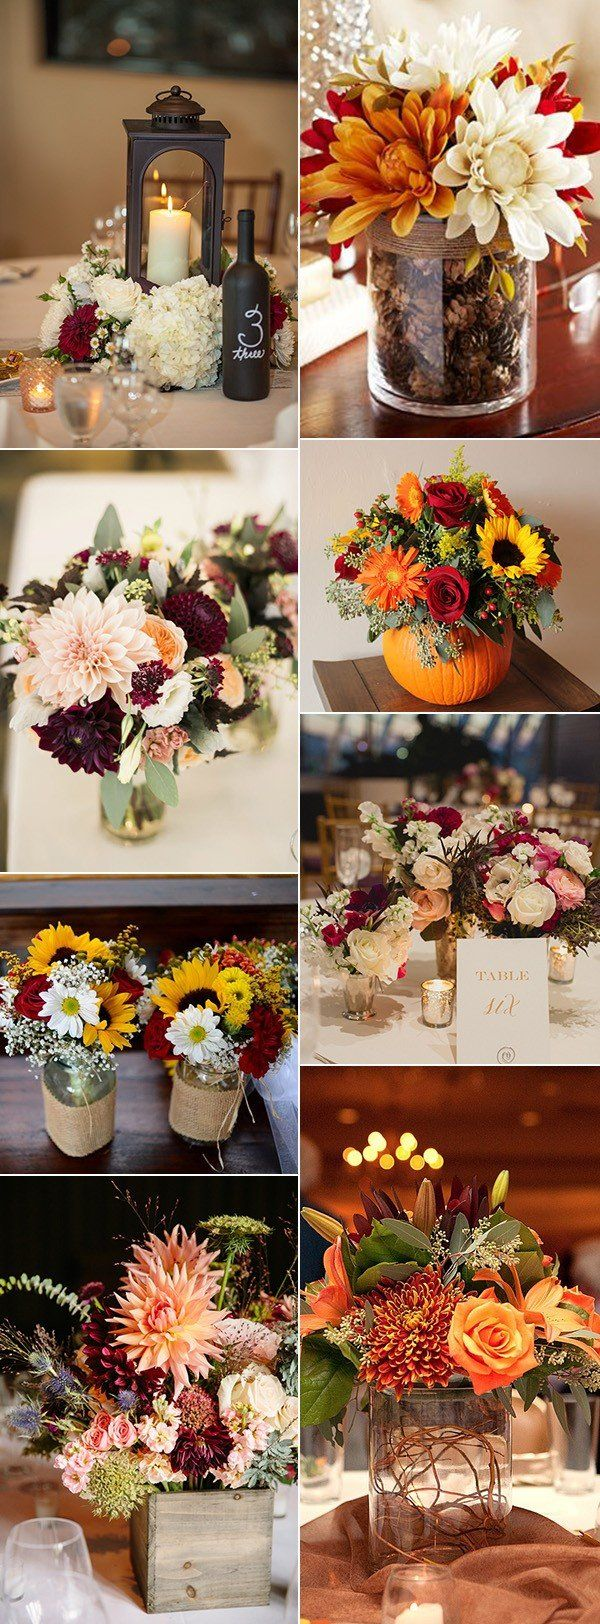 country rustic fall wedding centerpiece ideas